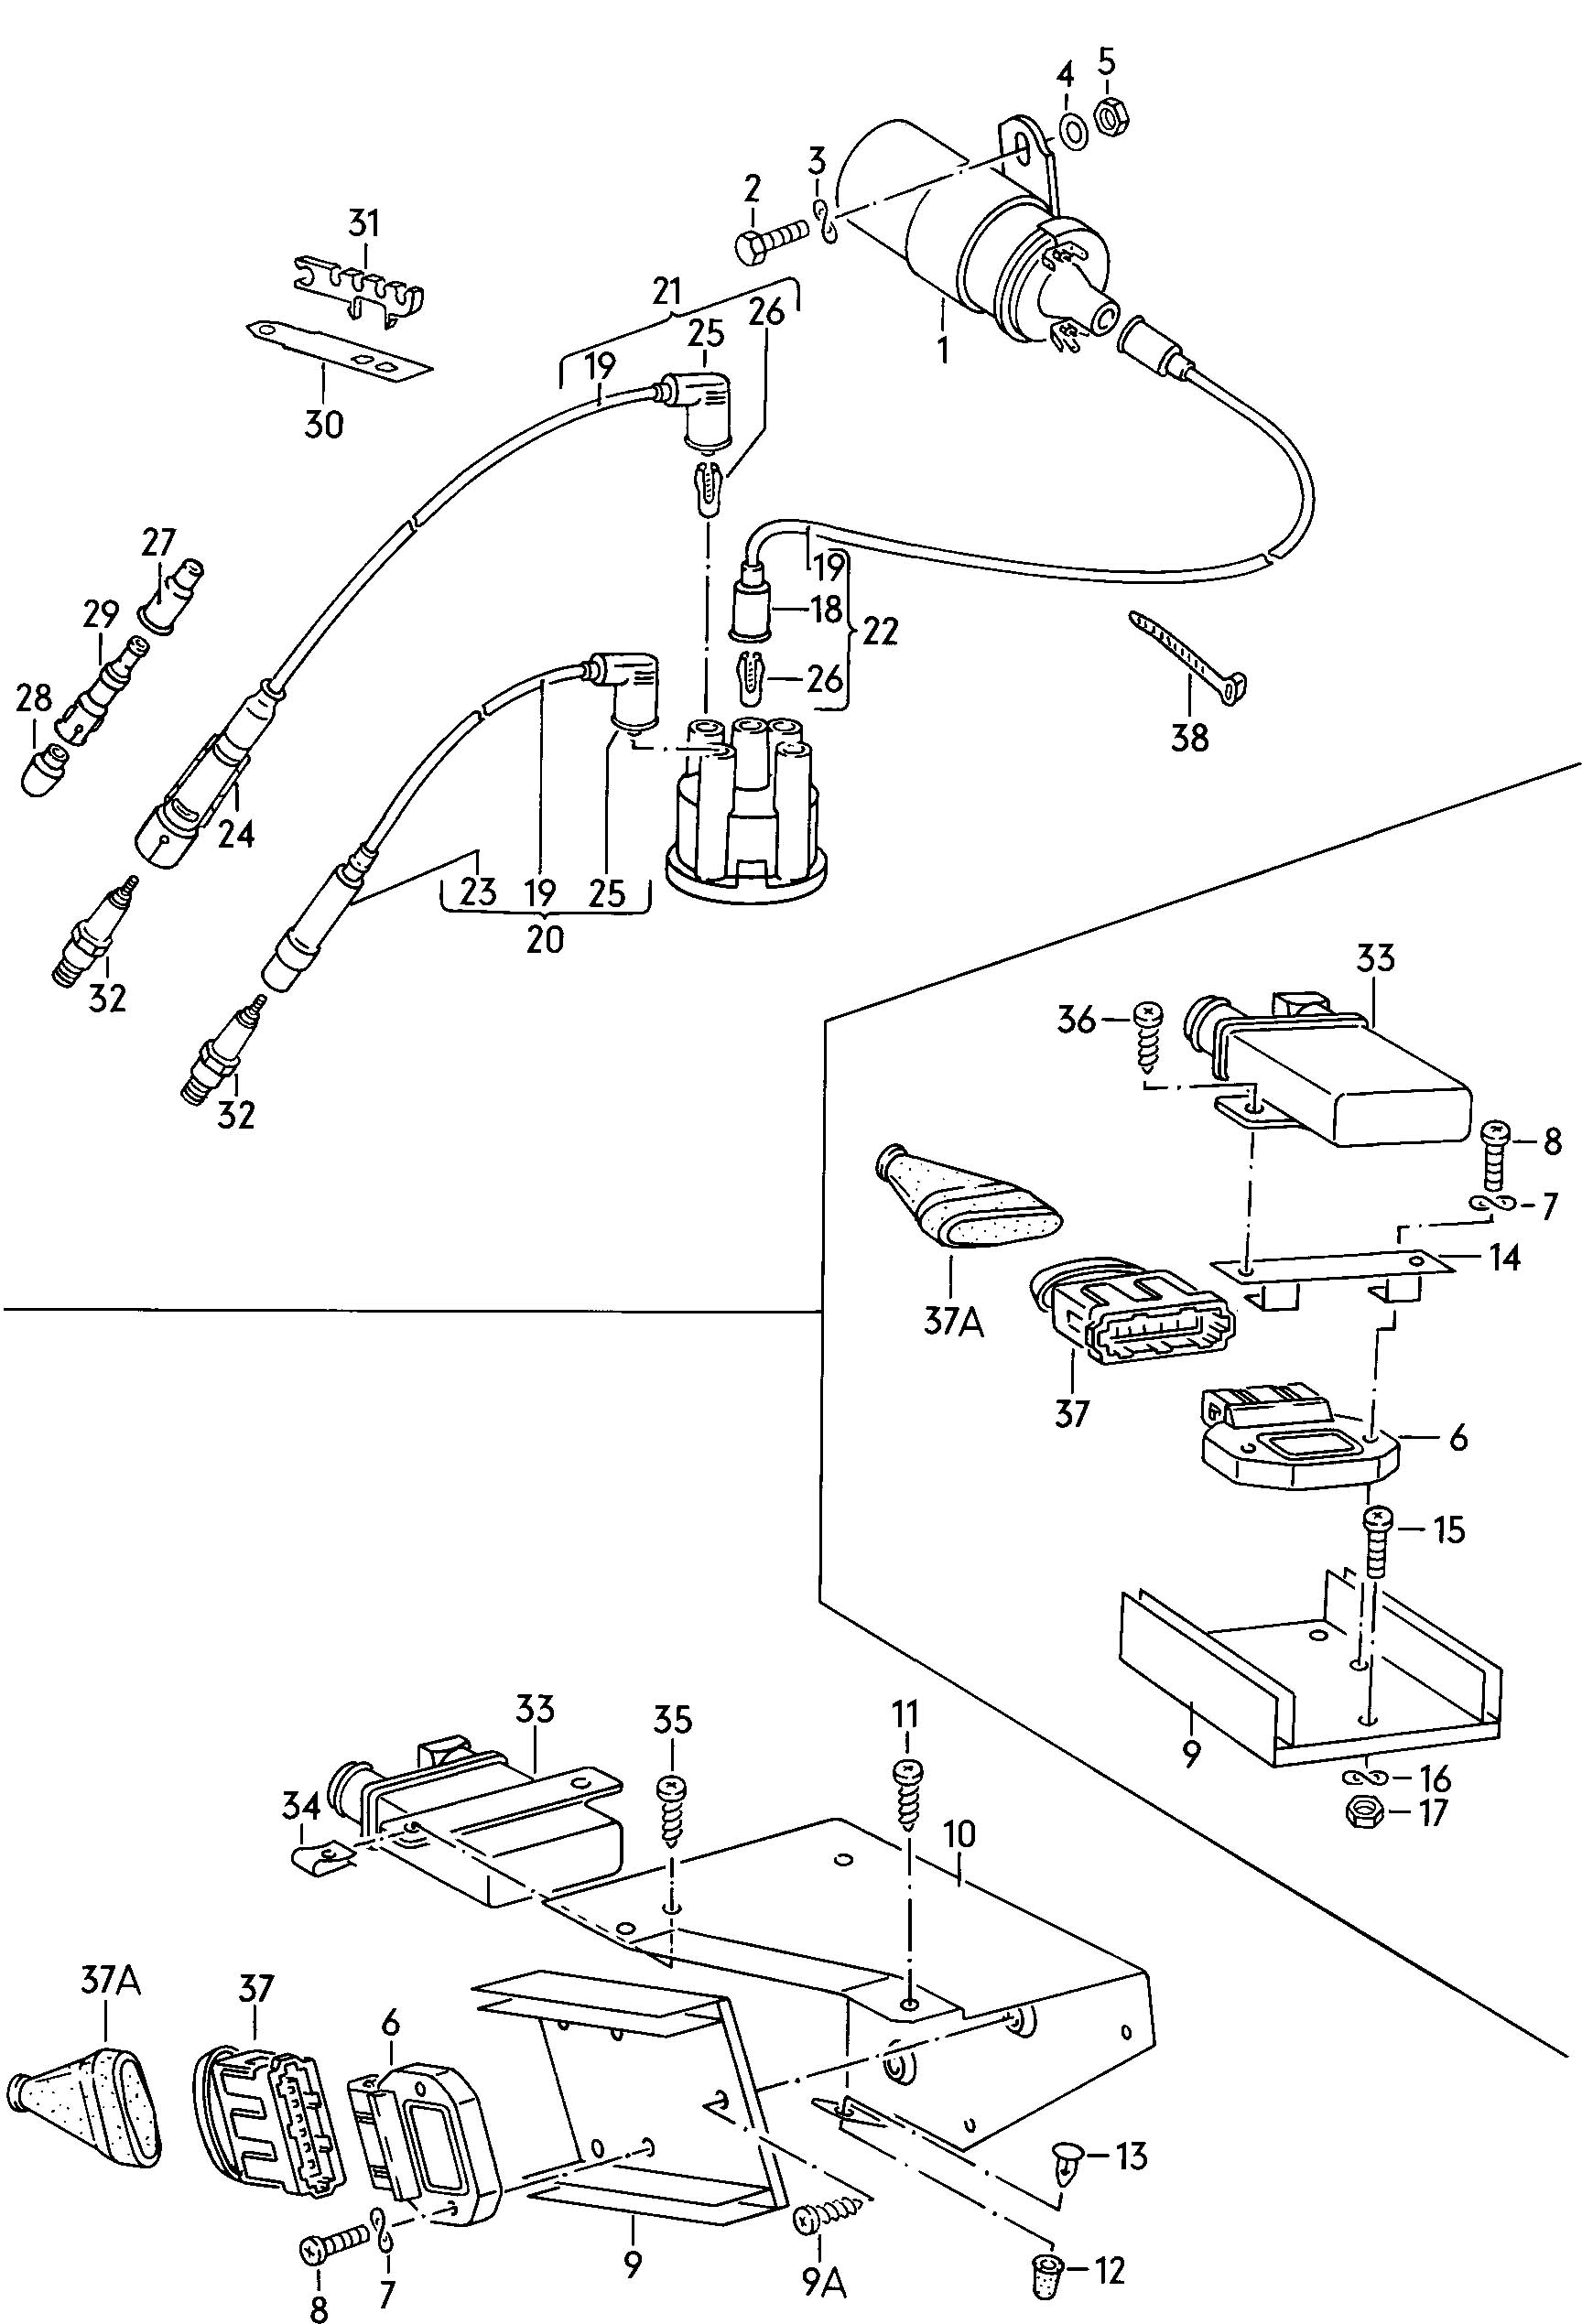 hight resolution of dune buggy wiring diagram free download wiring diagrams pictures